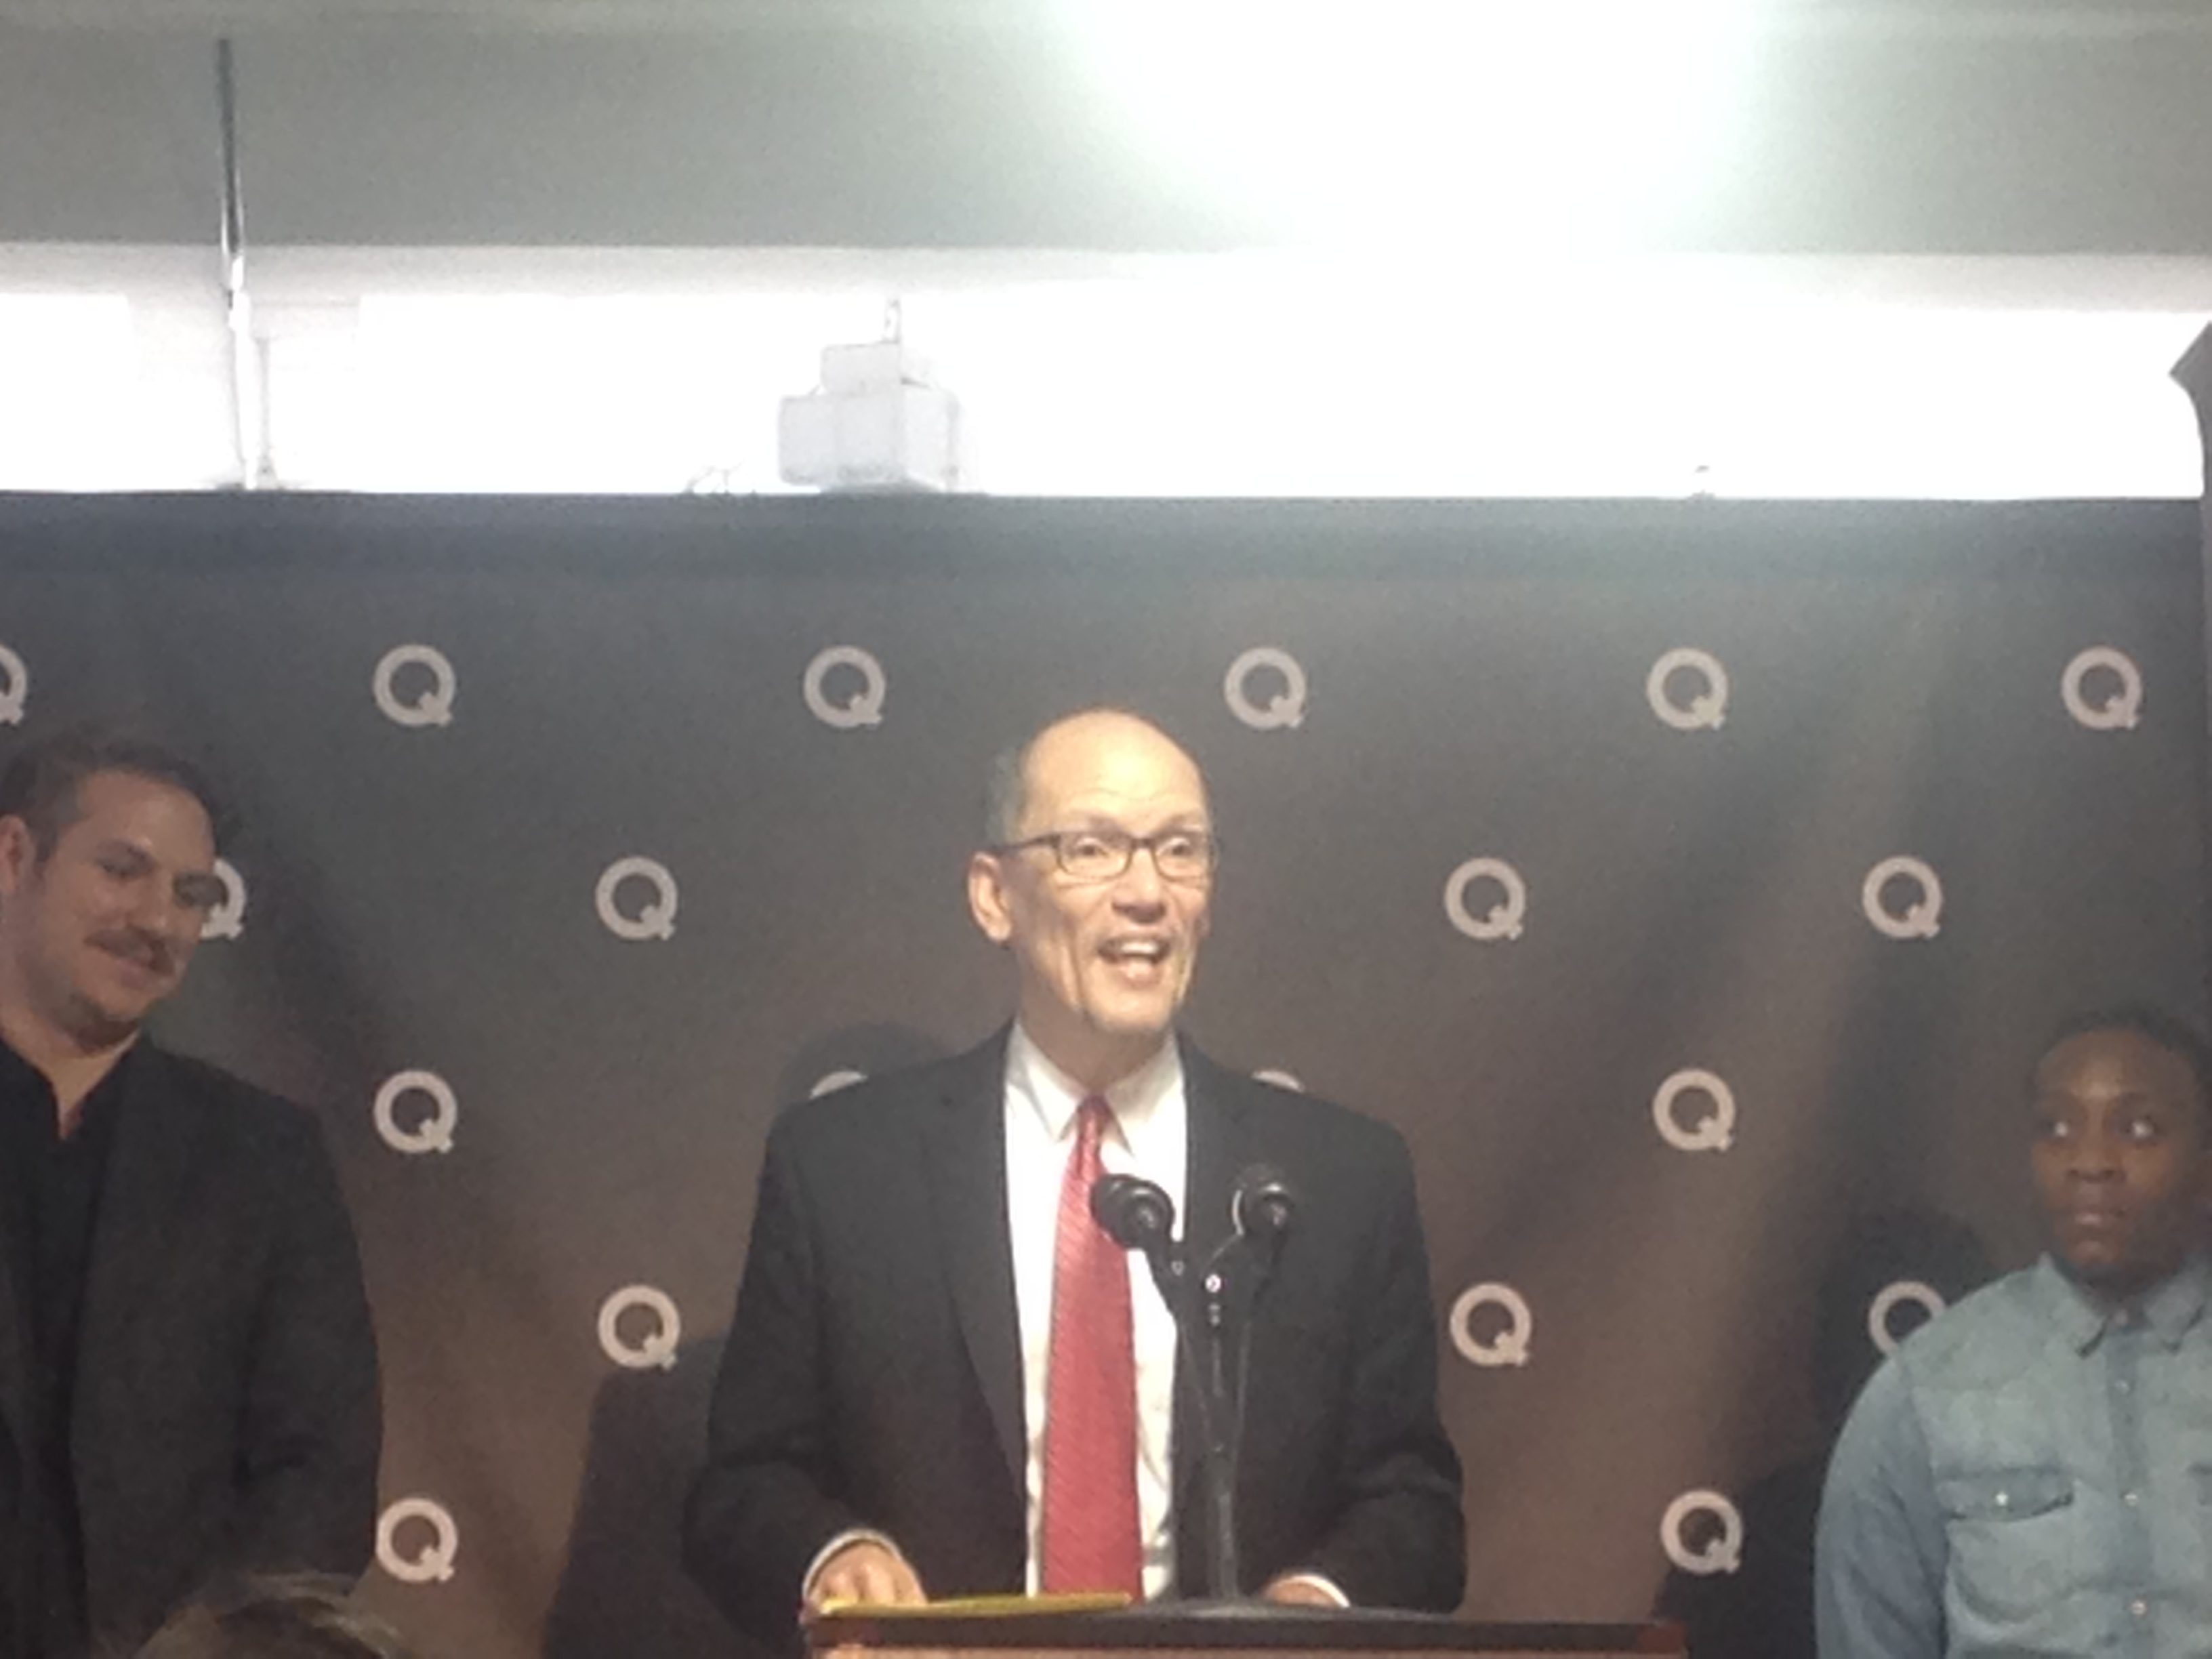 Thomas Perez at Q headquarters today.